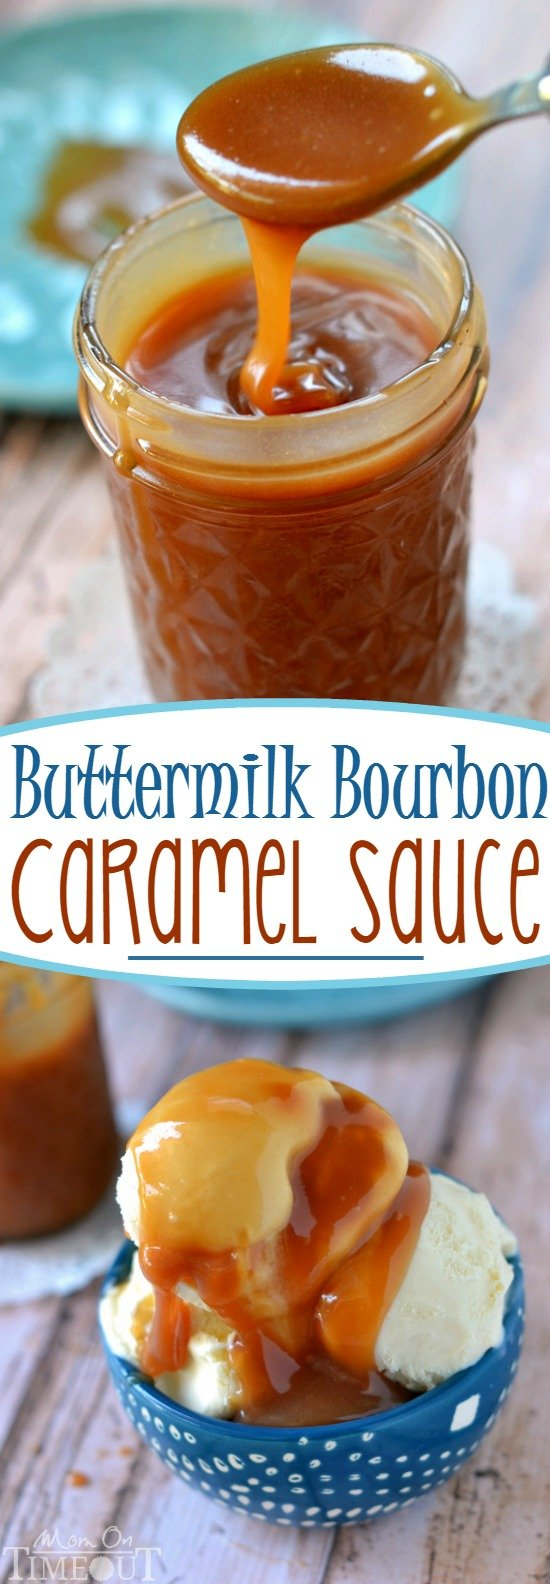 You may never buy caramel sauce again after you make this incredible Buttermilk Bourbon Caramel Sauce - bourbon optional! A delicious and easy topping for all things dessert!